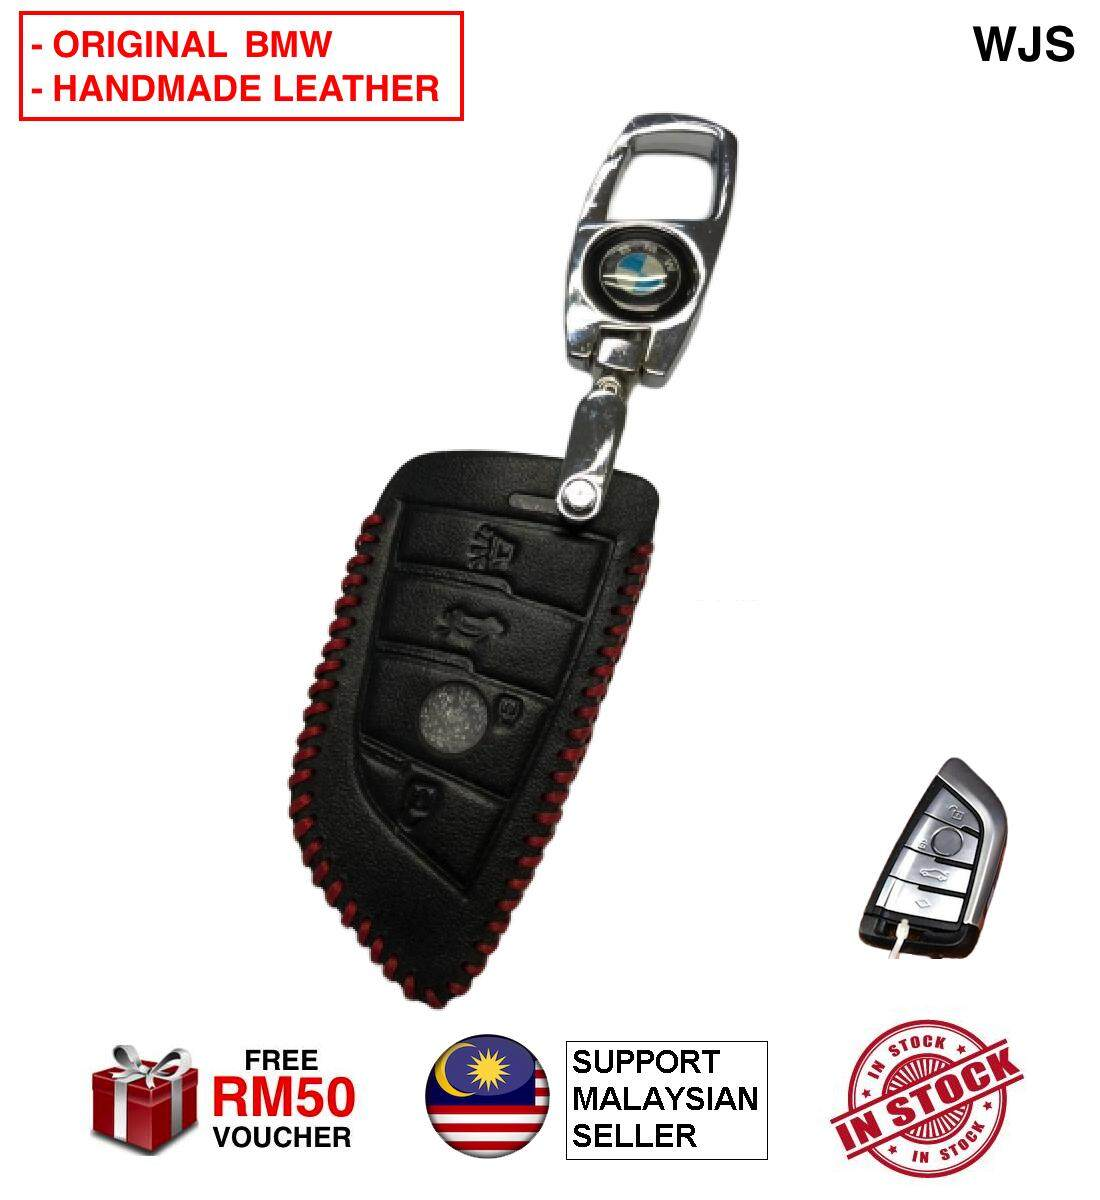 (ORIGINAL KEY LEATHER COVER) WJS Stainless Steel BMW 3 Series 5 Series 320 520 F30 F20 X1 X3 X5 X6 X7 F20 E34 E90 E60 E36 G30 G38 Smart Key Leather Key Cover Case Keyless Remote Casing BLACK WITH STRAP [FREE RM 50 VOUCHER]